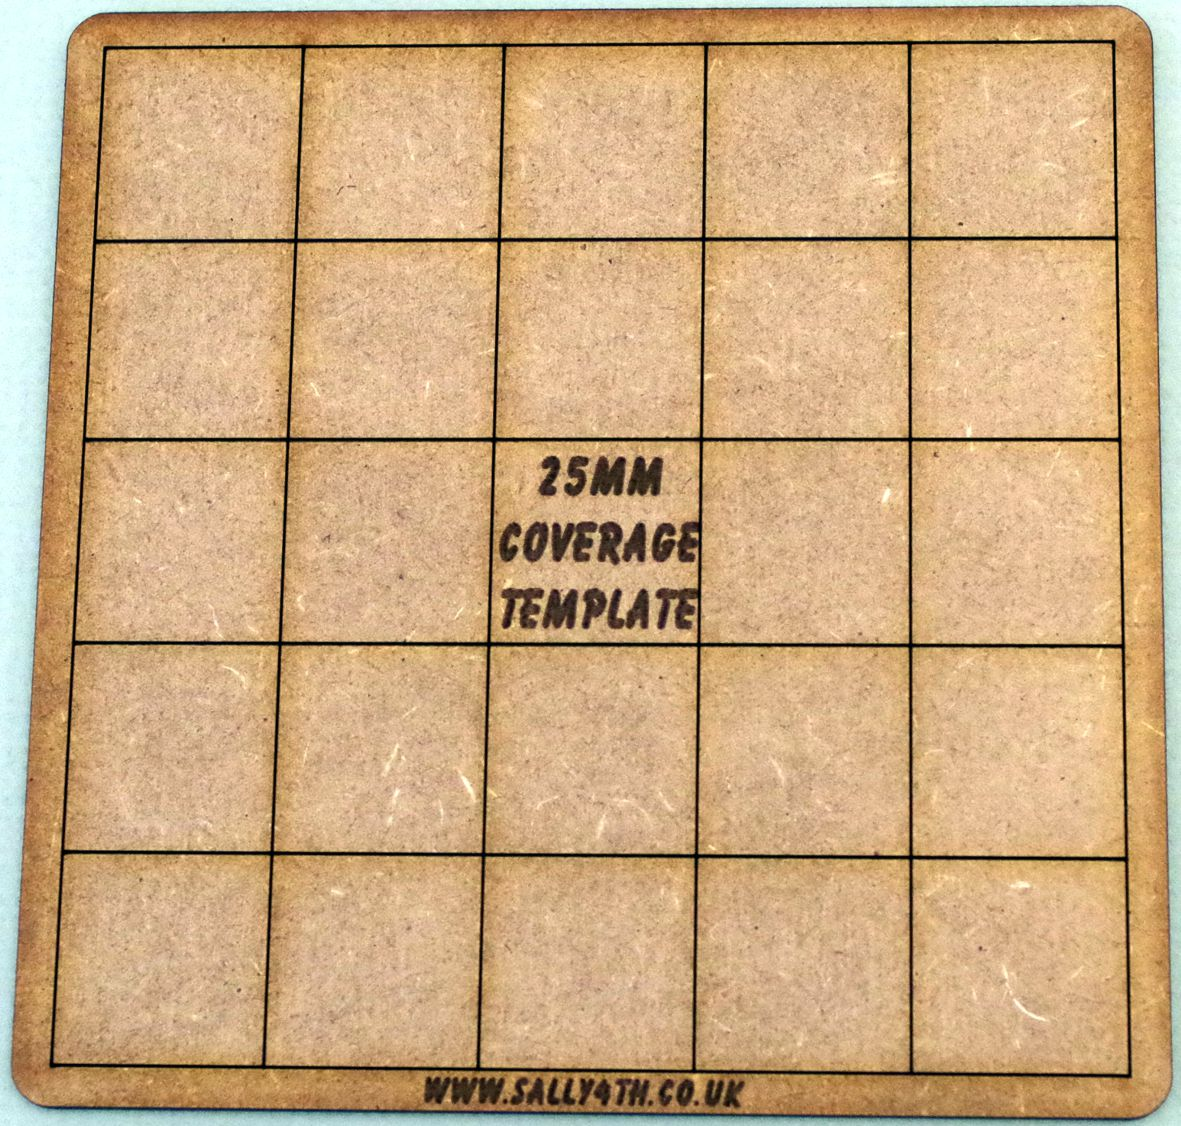 25mm coverage template